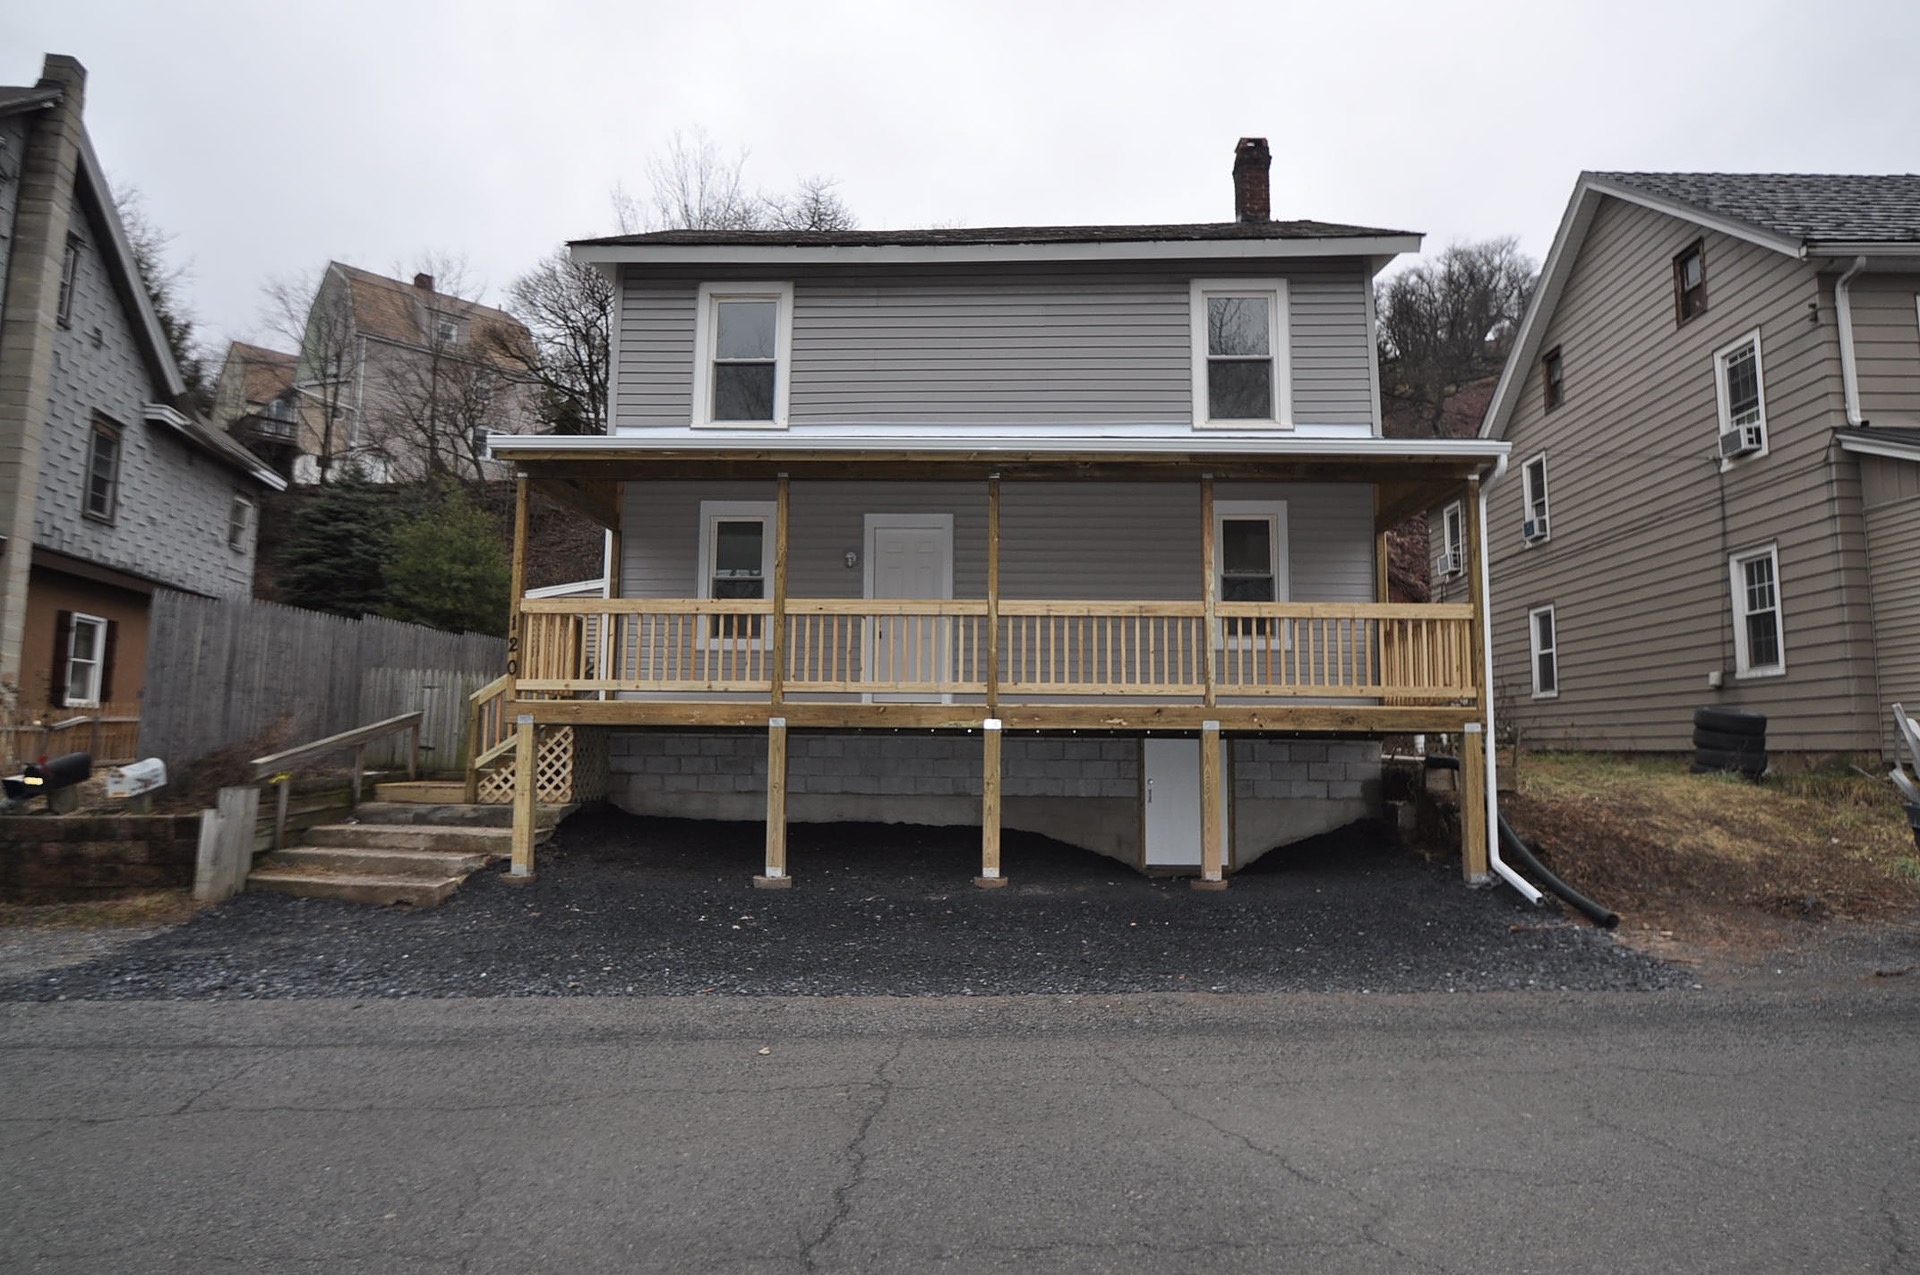 Palmerton - 3 Beds 1 Baths $99,900